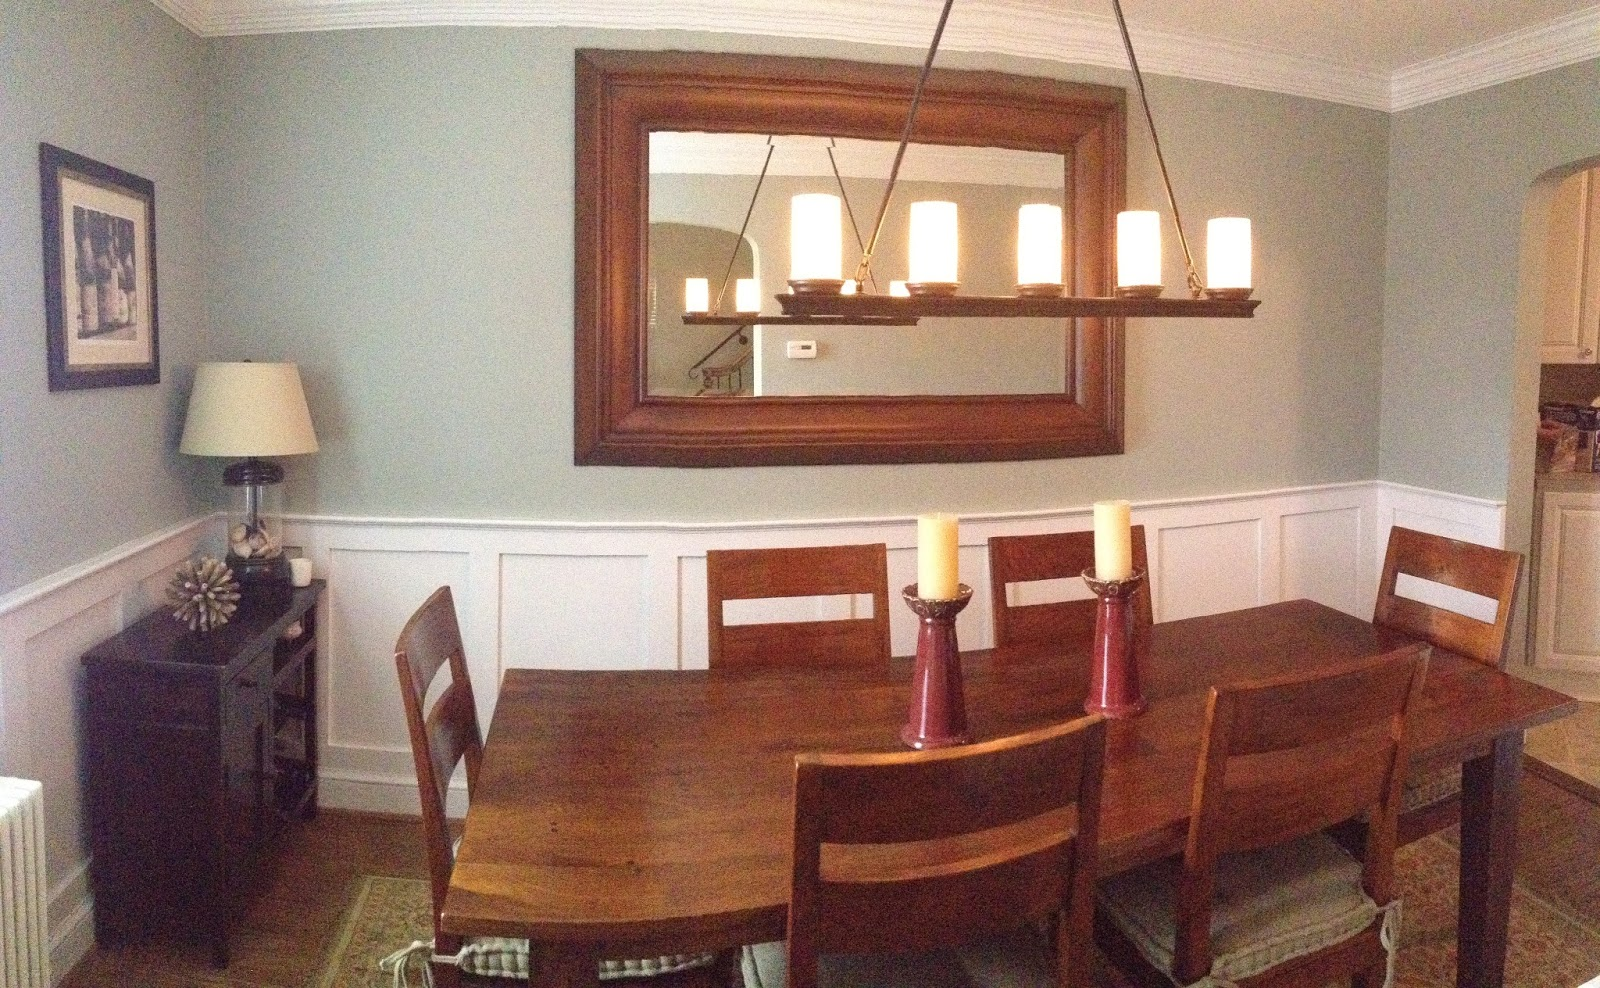 Chair Rail in Dining Room | My Home Renovation Blog